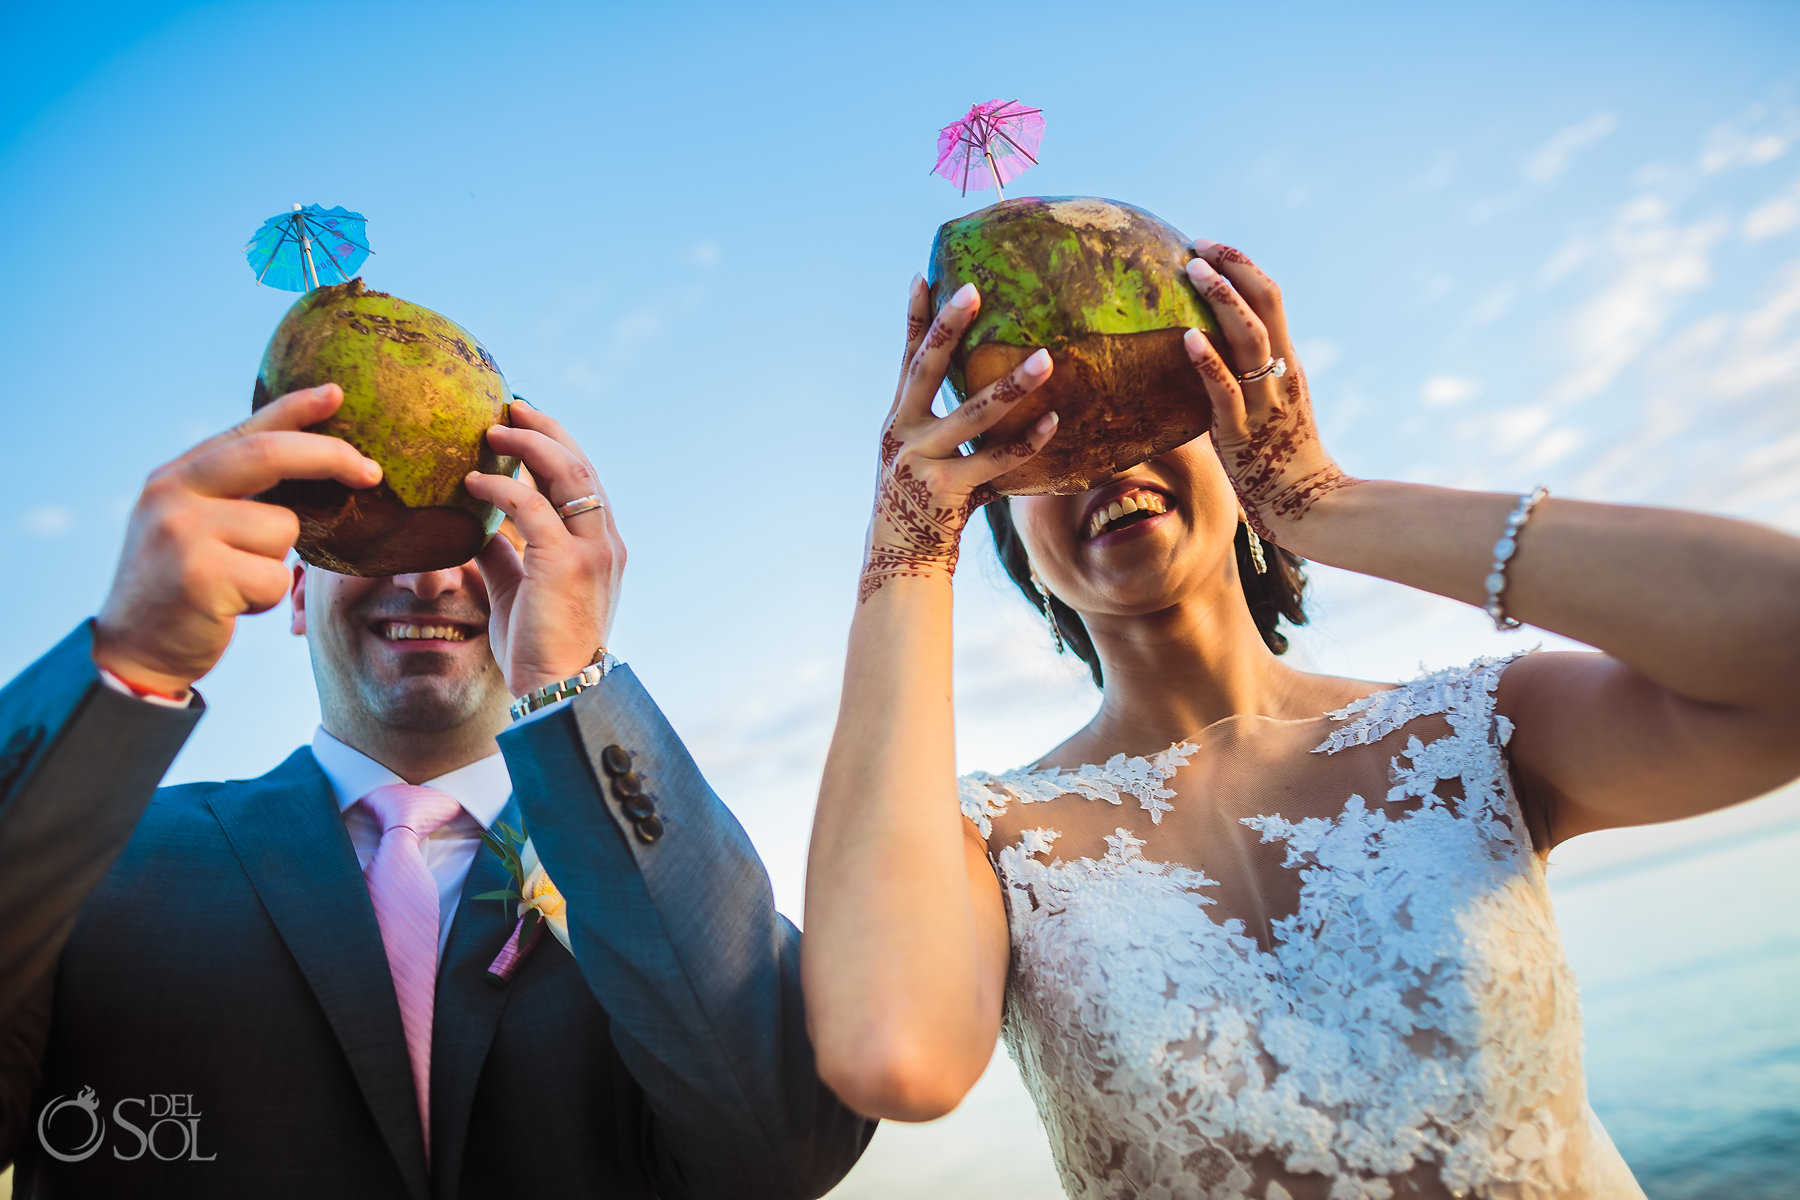 coconut drink fun photo idea Dreams Tulum Jewish Wedding